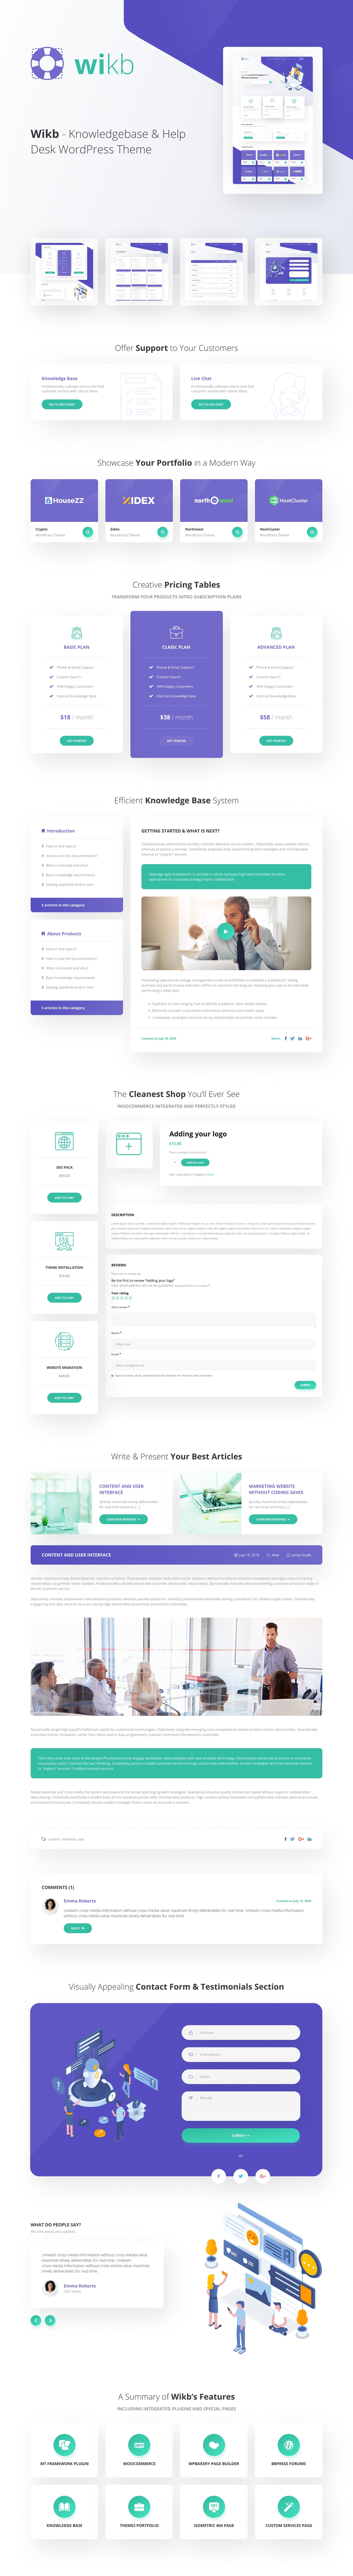 Wikb - Knowledgebase & Help Desk WP Theme - 1